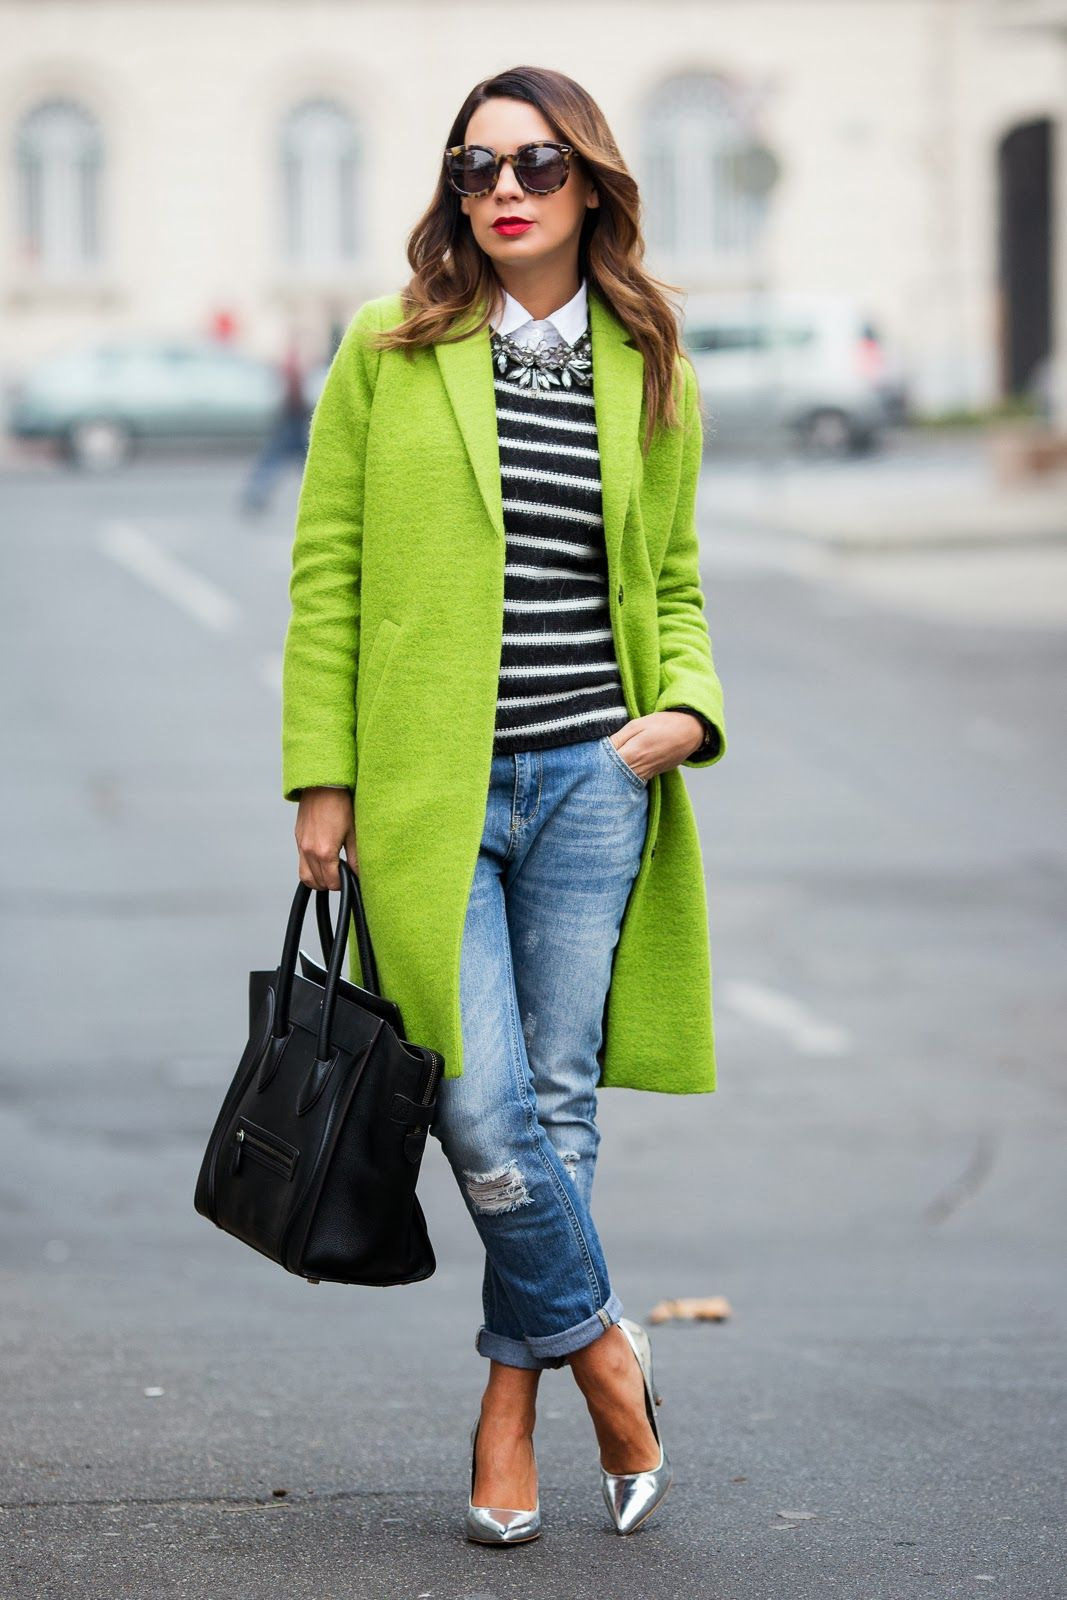 2013 Coat: TOPSHOP | Sweater: PULL & BEAR | Necklace: ZARA | Jeans: MANGO | Bag: CÉLINE | Shoes: STRADIVARIUS